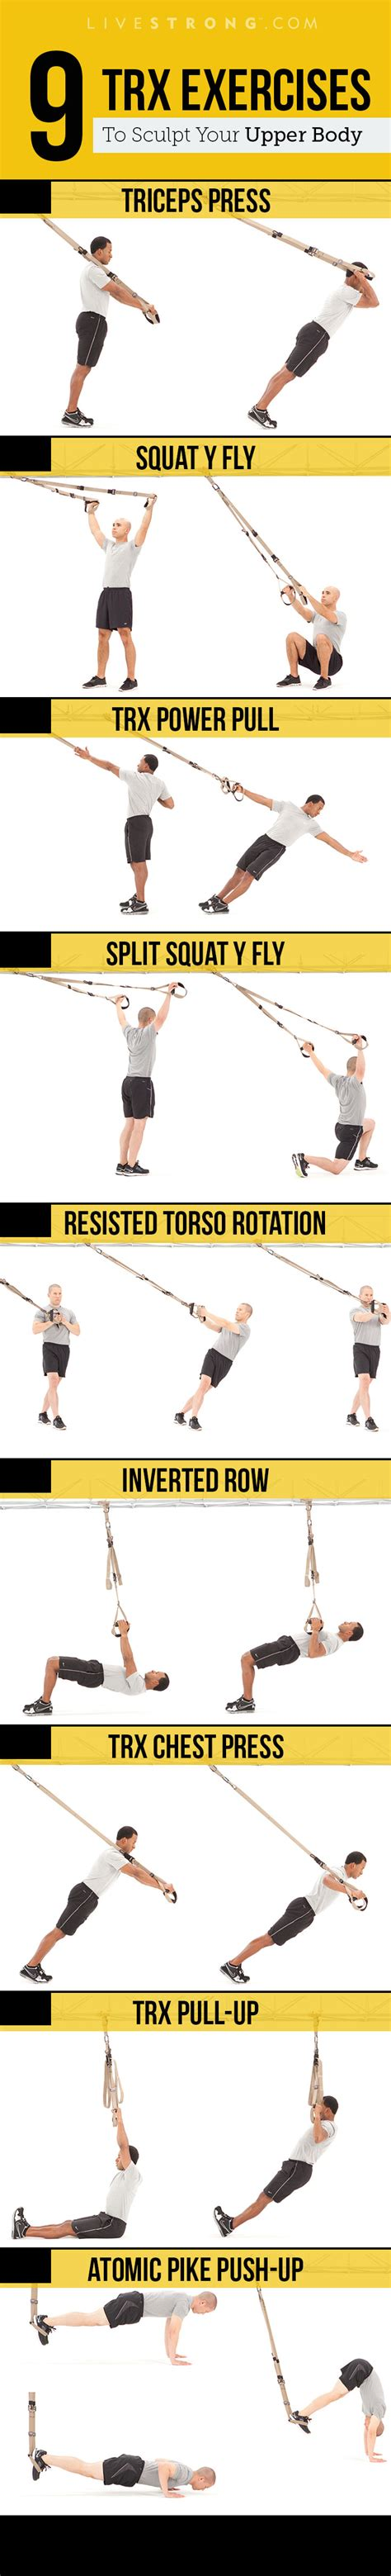 trx workouts 187 health and fitness